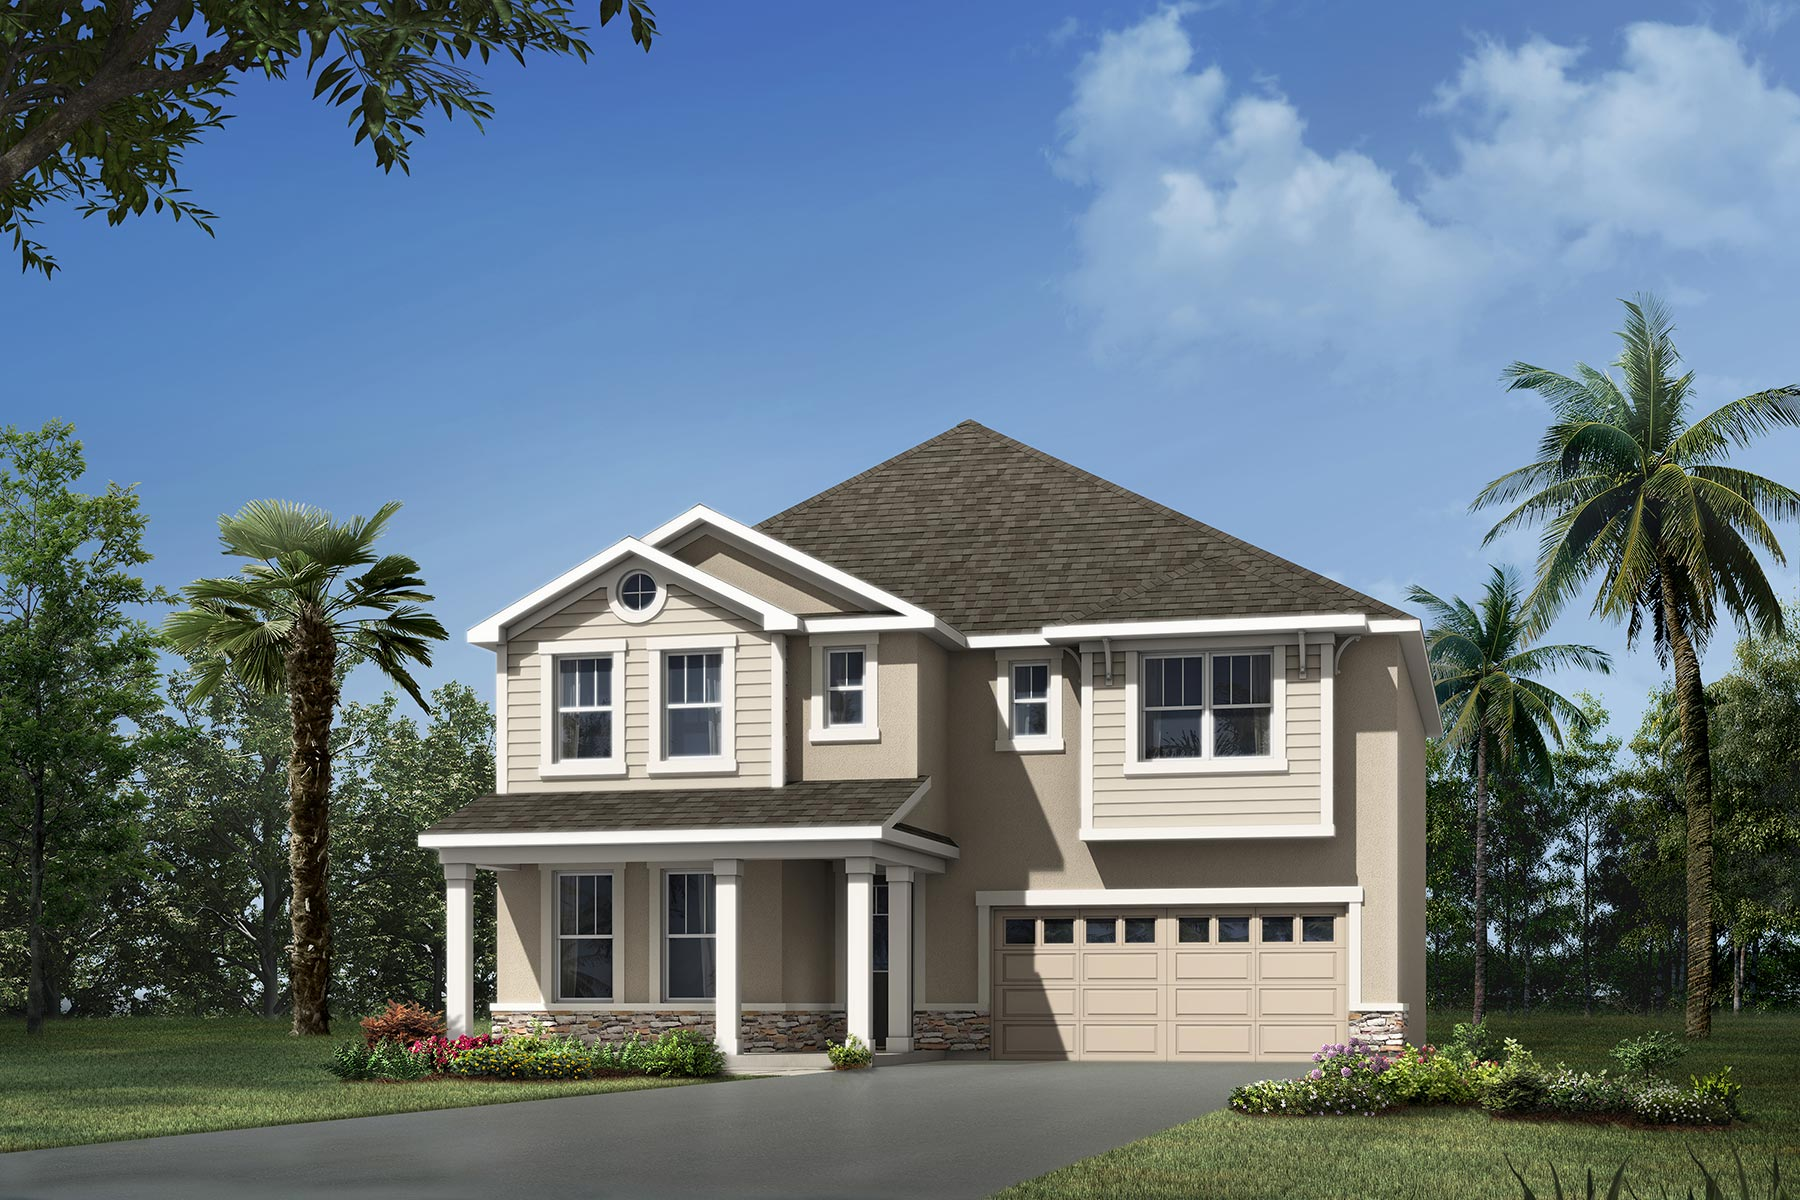 Lucy Plan Elevation Front at Waterbrooke in Clermont Florida by Mattamy Homes